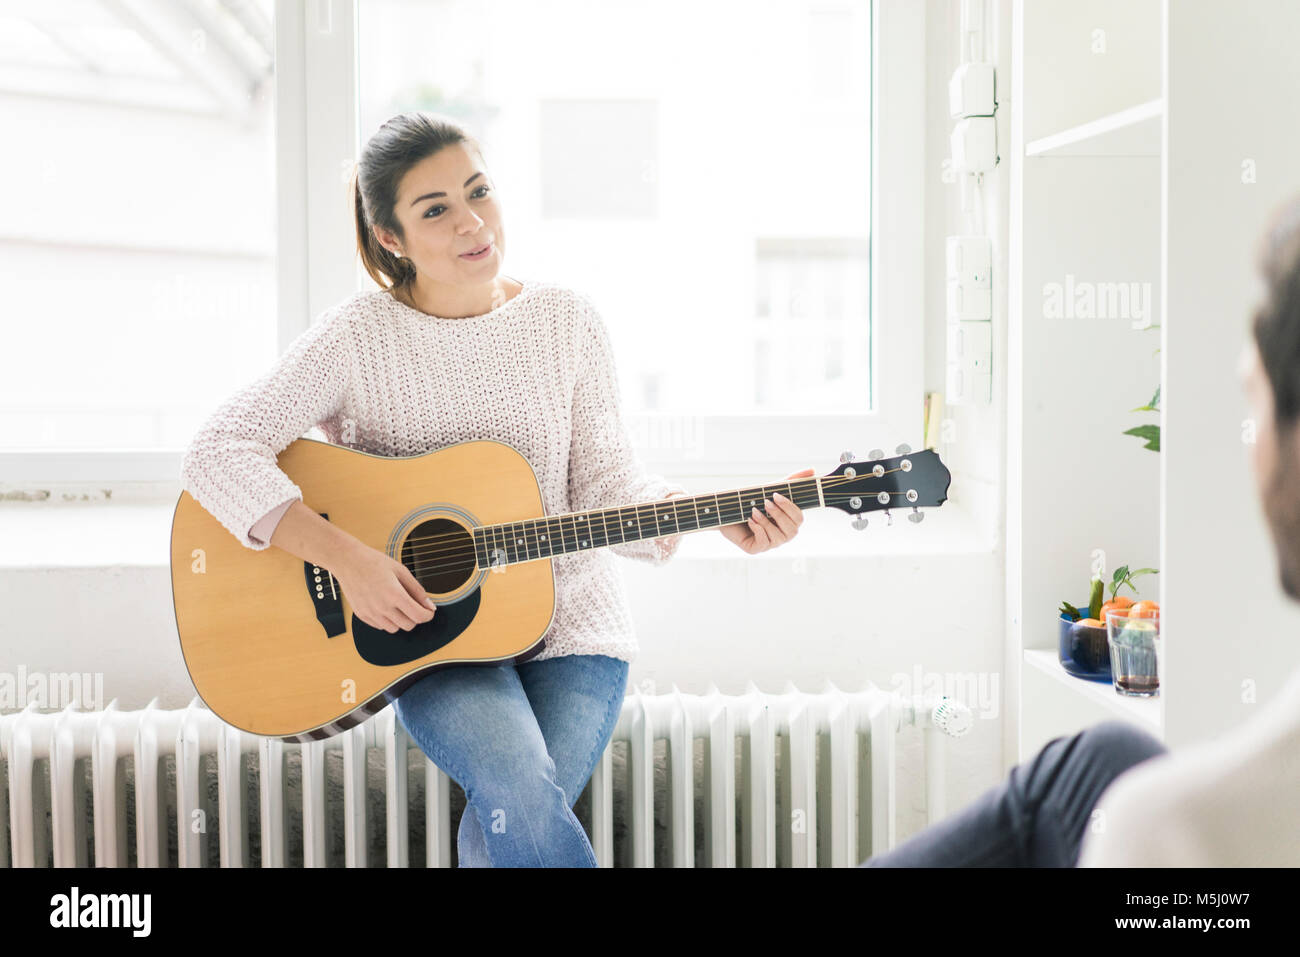 Woman playing guitar for man - Stock Image